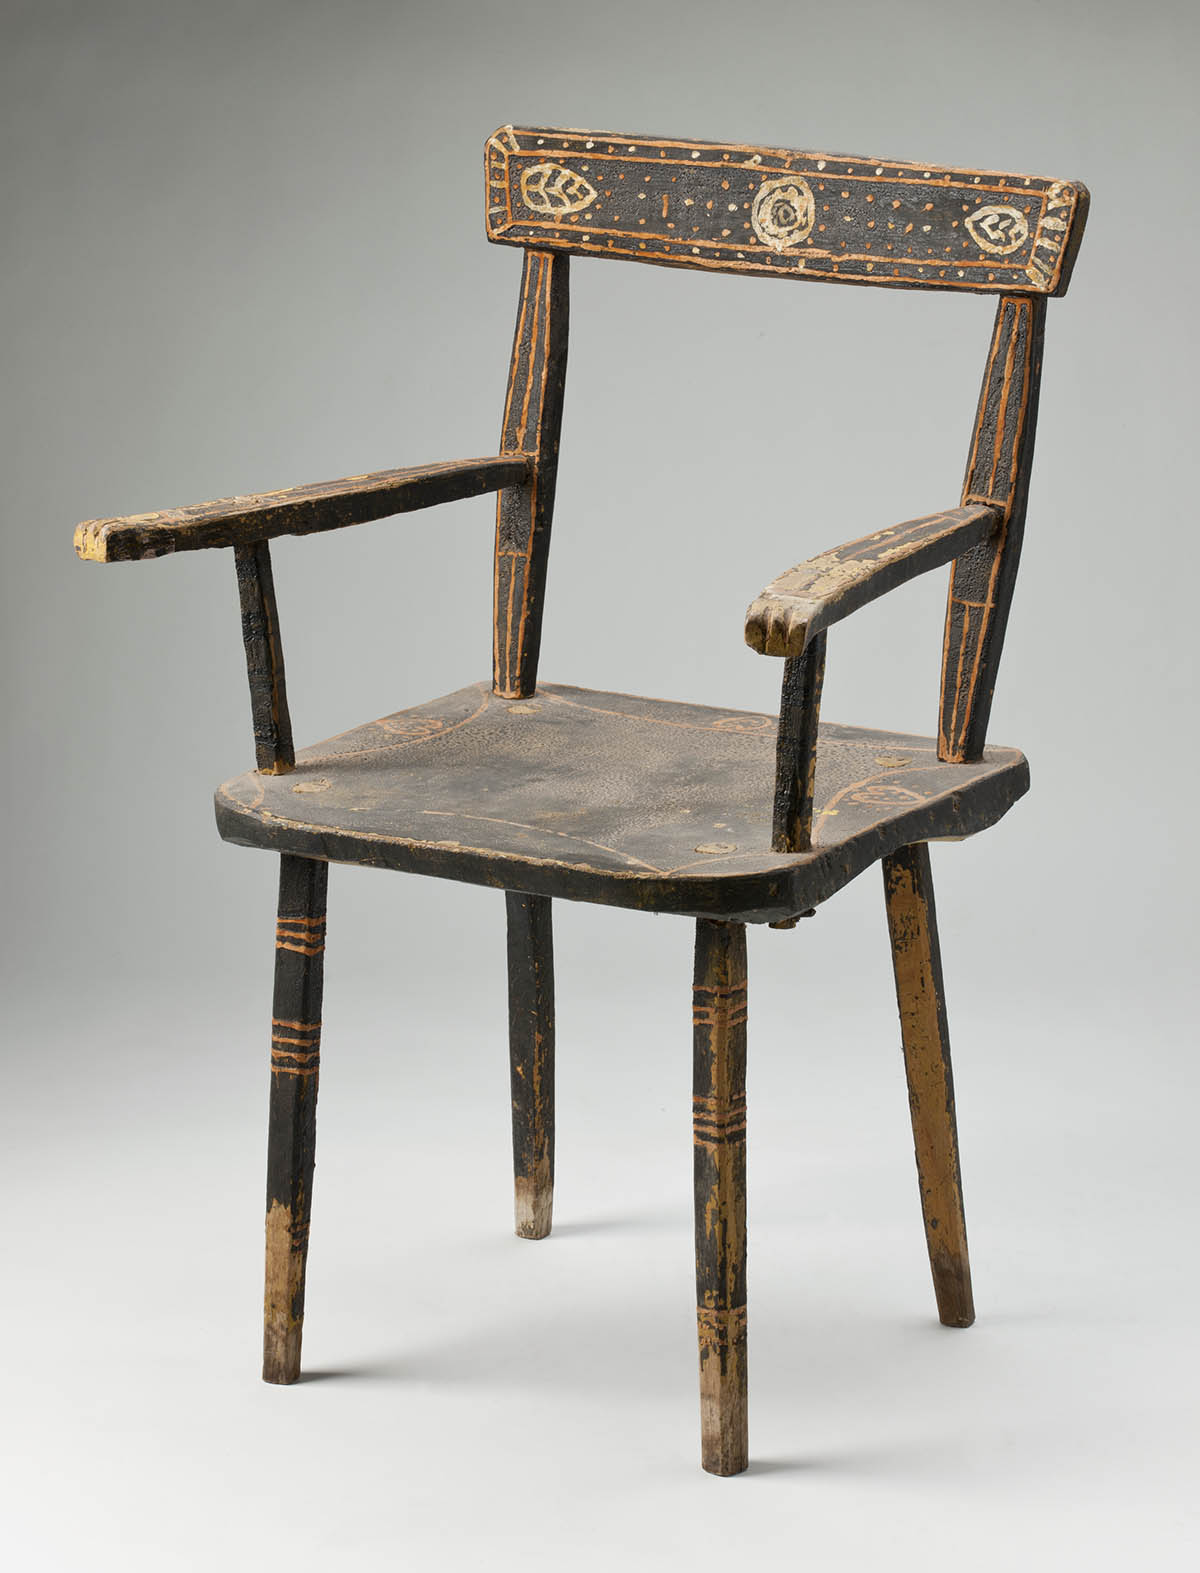 A wooden chair painted primarily in a dark brown, decorated in shades of orange and light brown on the arms, legs and back. - click to view larger image